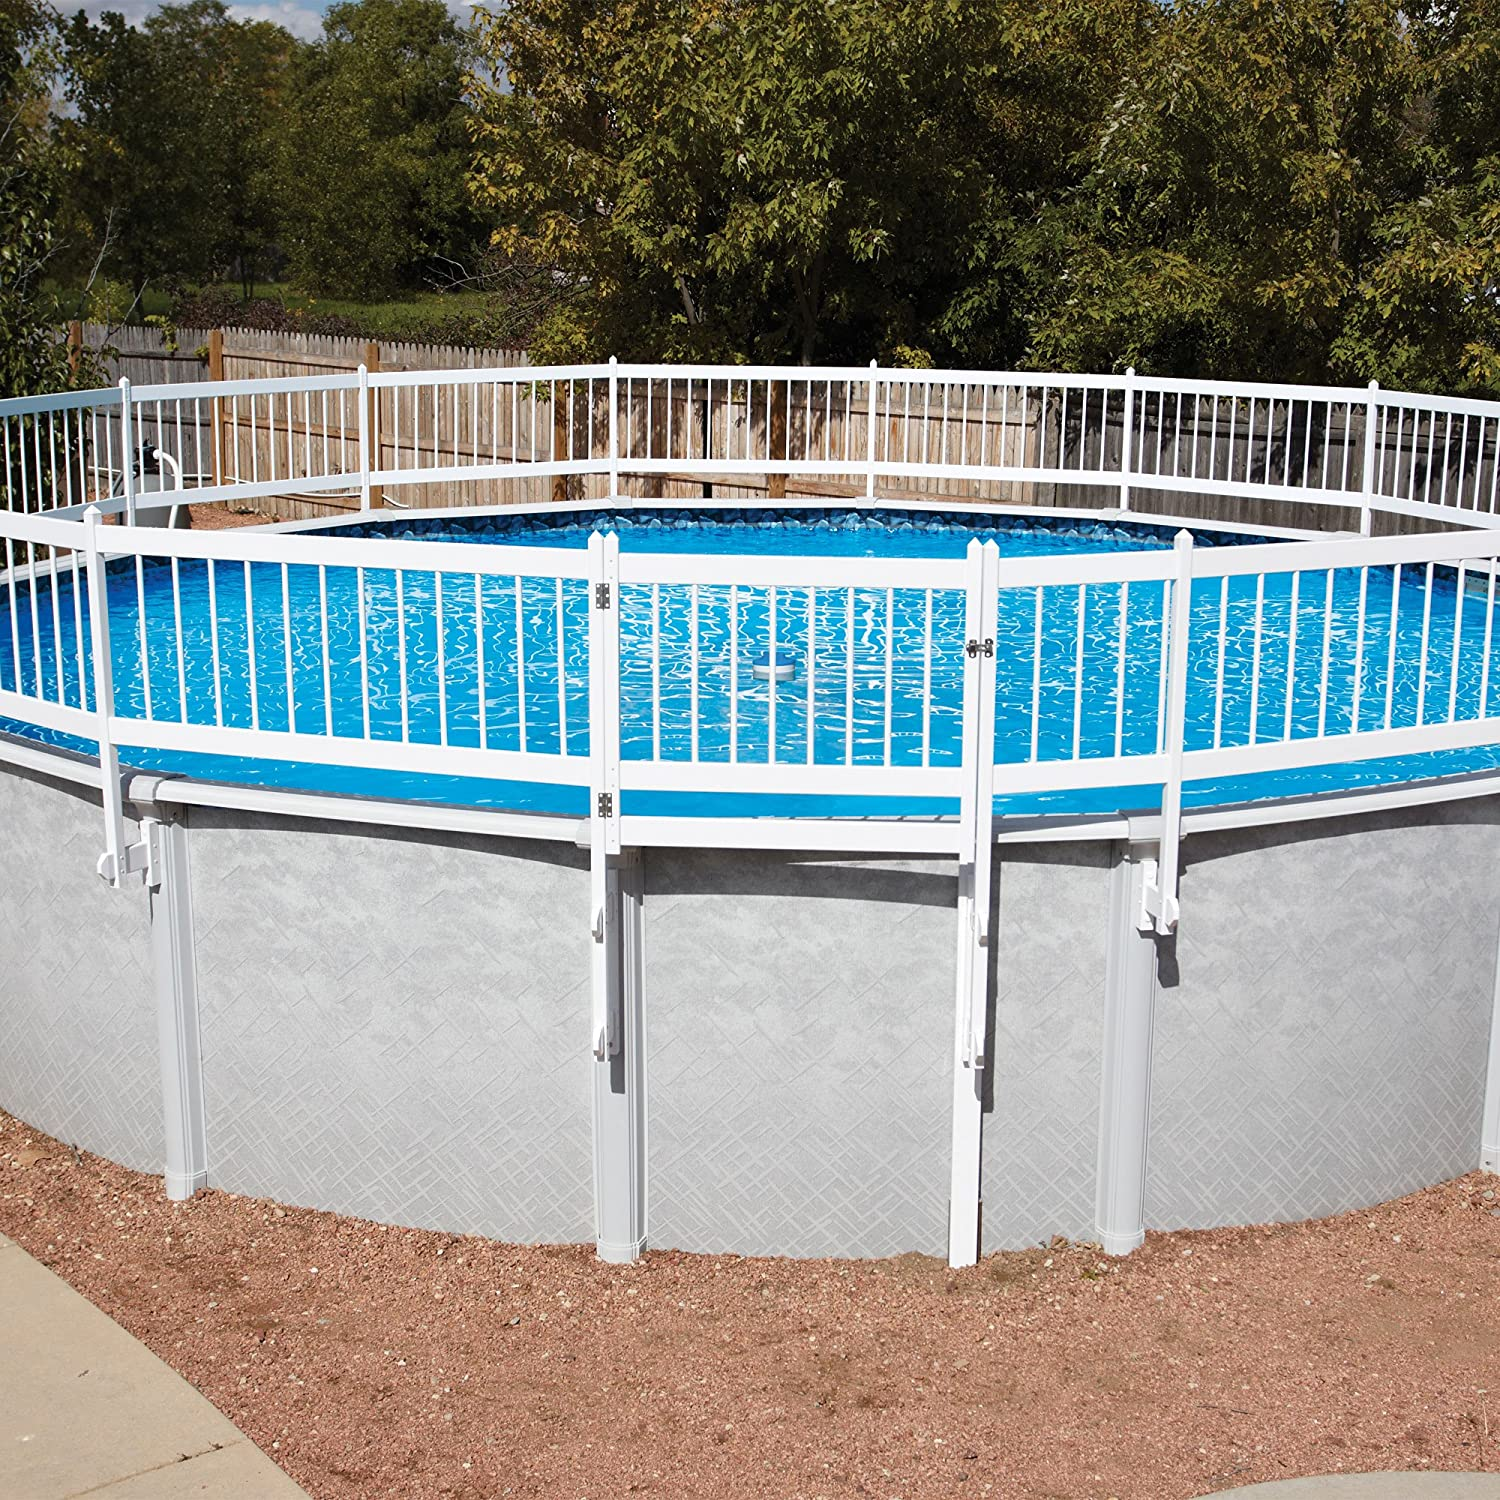 Best pool fence reviews to protect your family